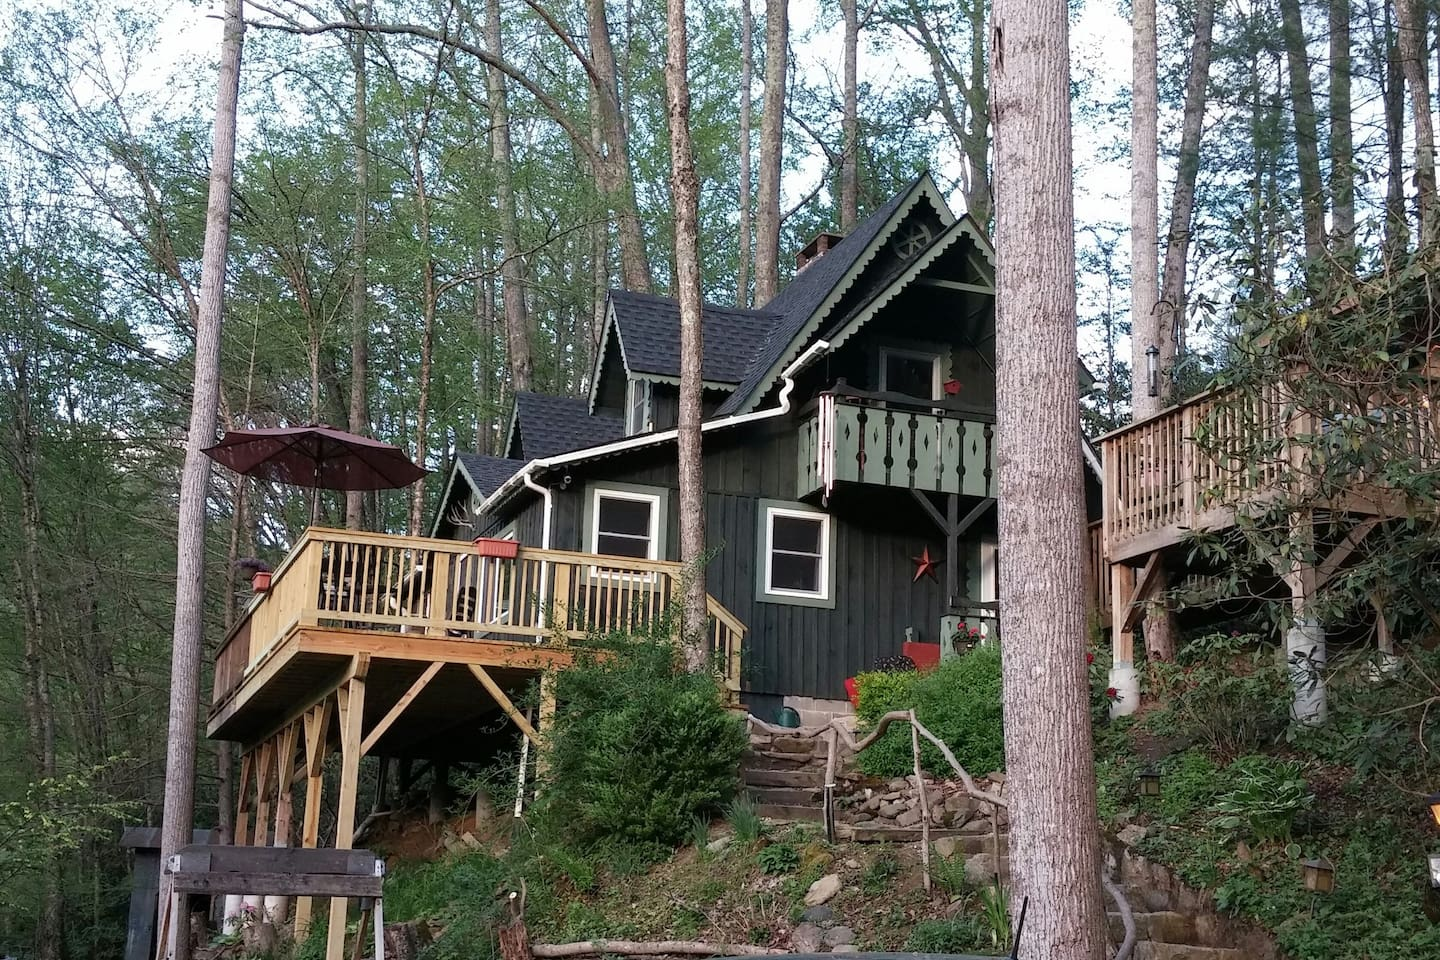 Cozy Creekside Cabin  - Outdoor Covered Hot Tub right side of photo.  - Laurel Fork Creek not pictured to the left of Large Balcony.